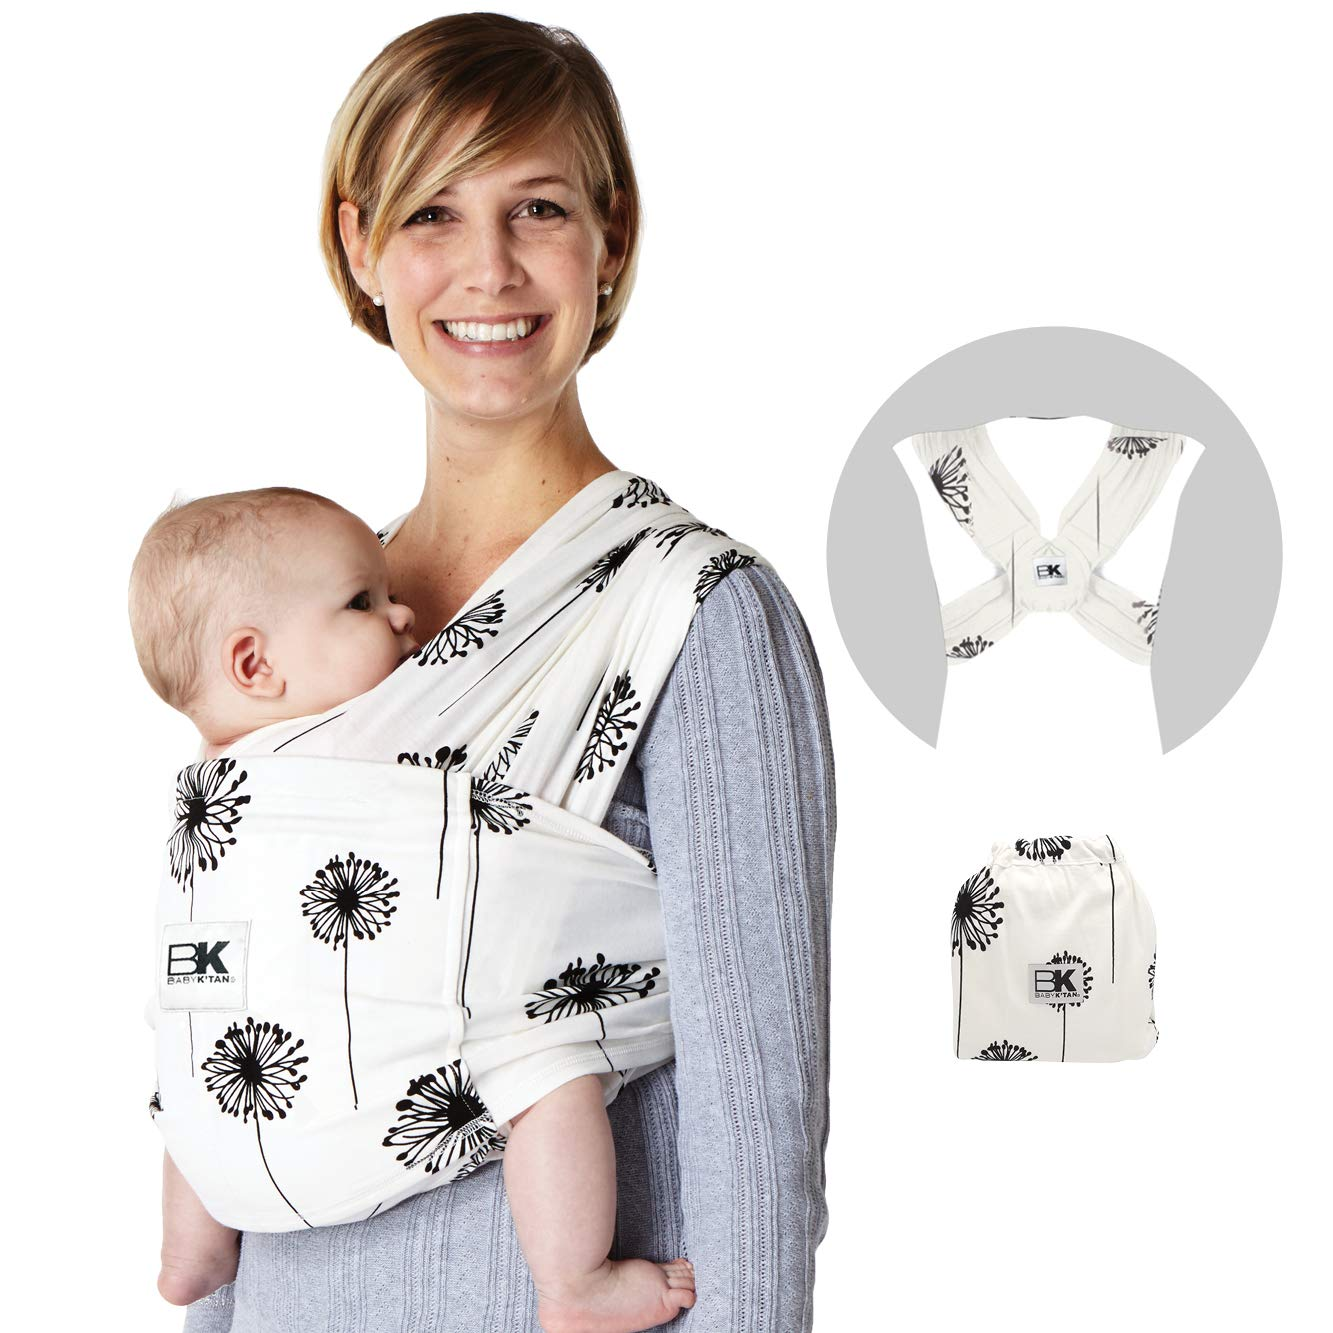 Baby K'tan Print Baby Wrap Carrier, Infant and Child Sling-Dandelion, Women 6-8 (Small), Men 37-38. Newborn up to 35 Pound Best for Babywearing.